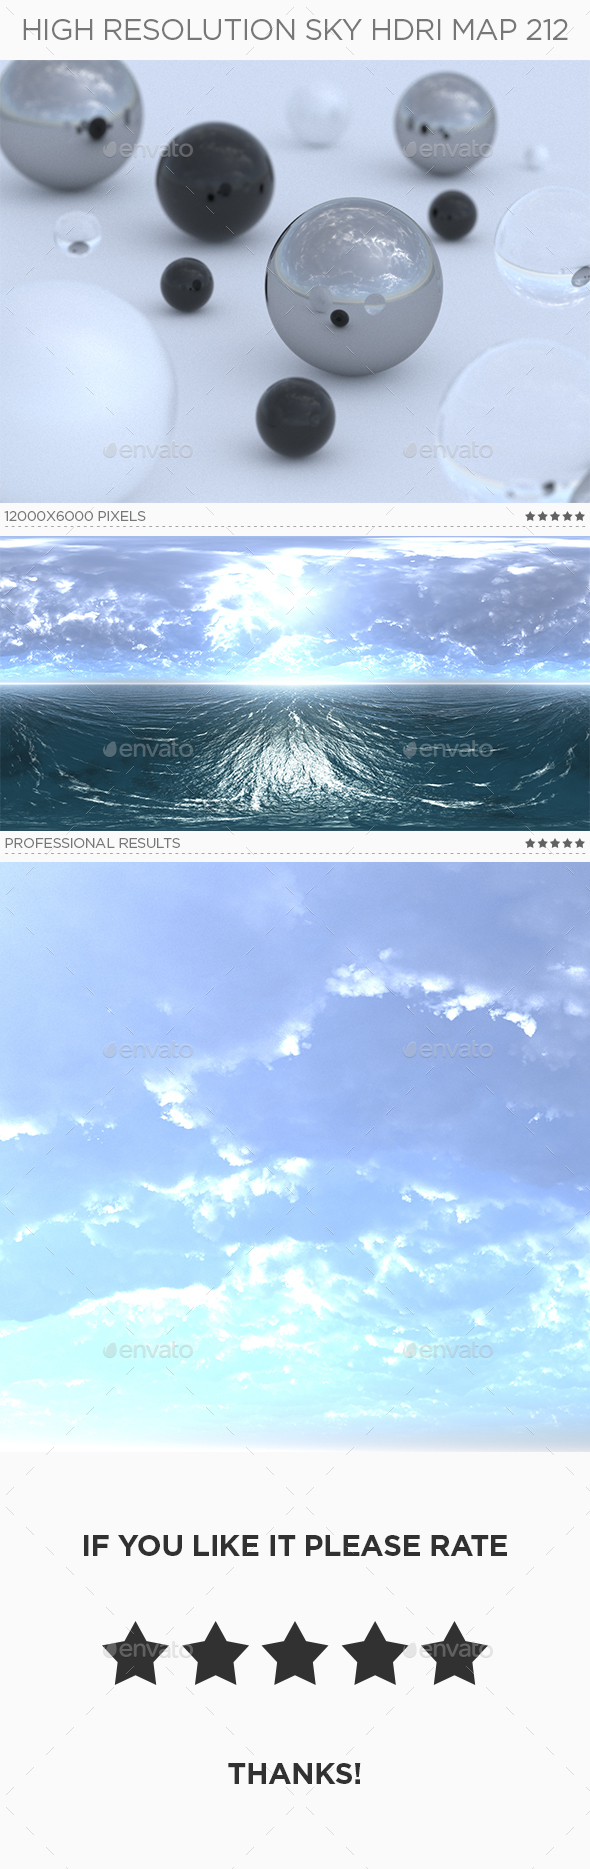 High Resolution Sky HDRi Map 212 - 3DOcean Item for Sale